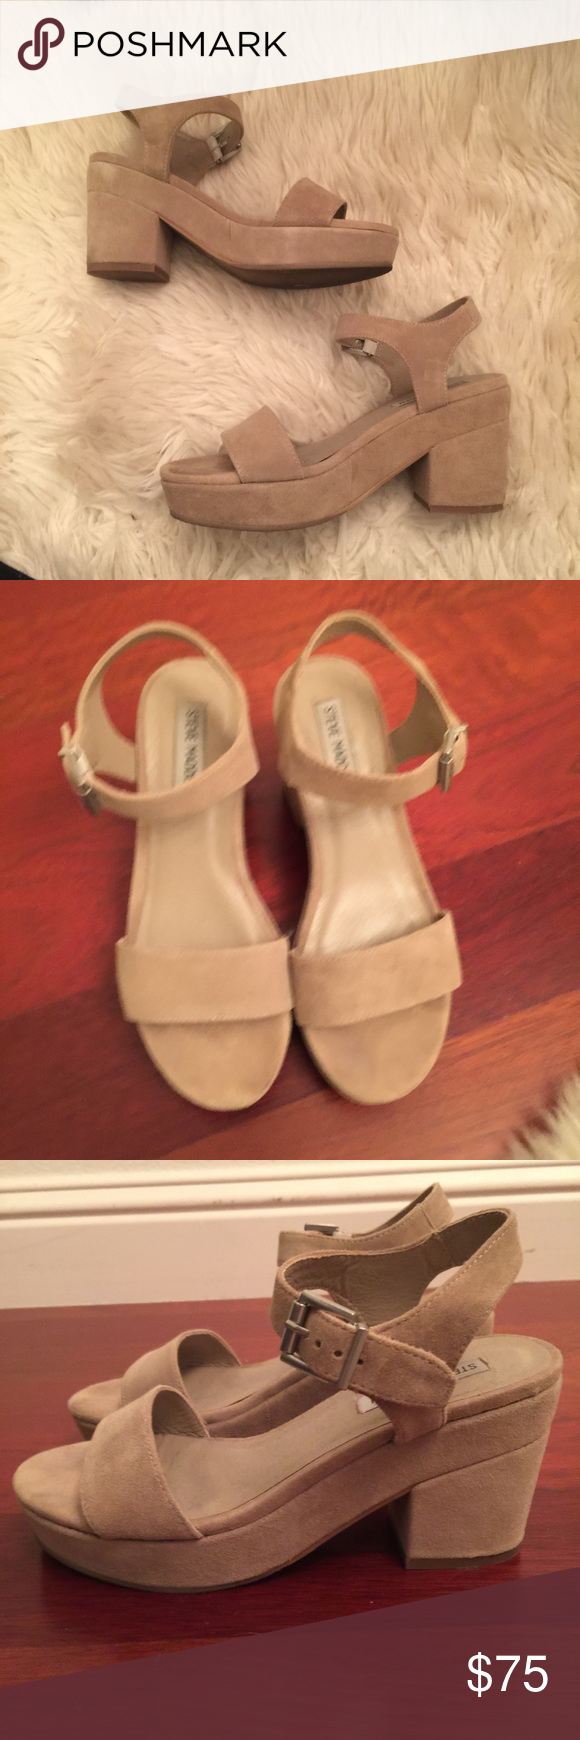 nude heeled sandals Steve Madden ashlin platform sandals worn once great condition very comfy Steve Madden Shoes Sandals